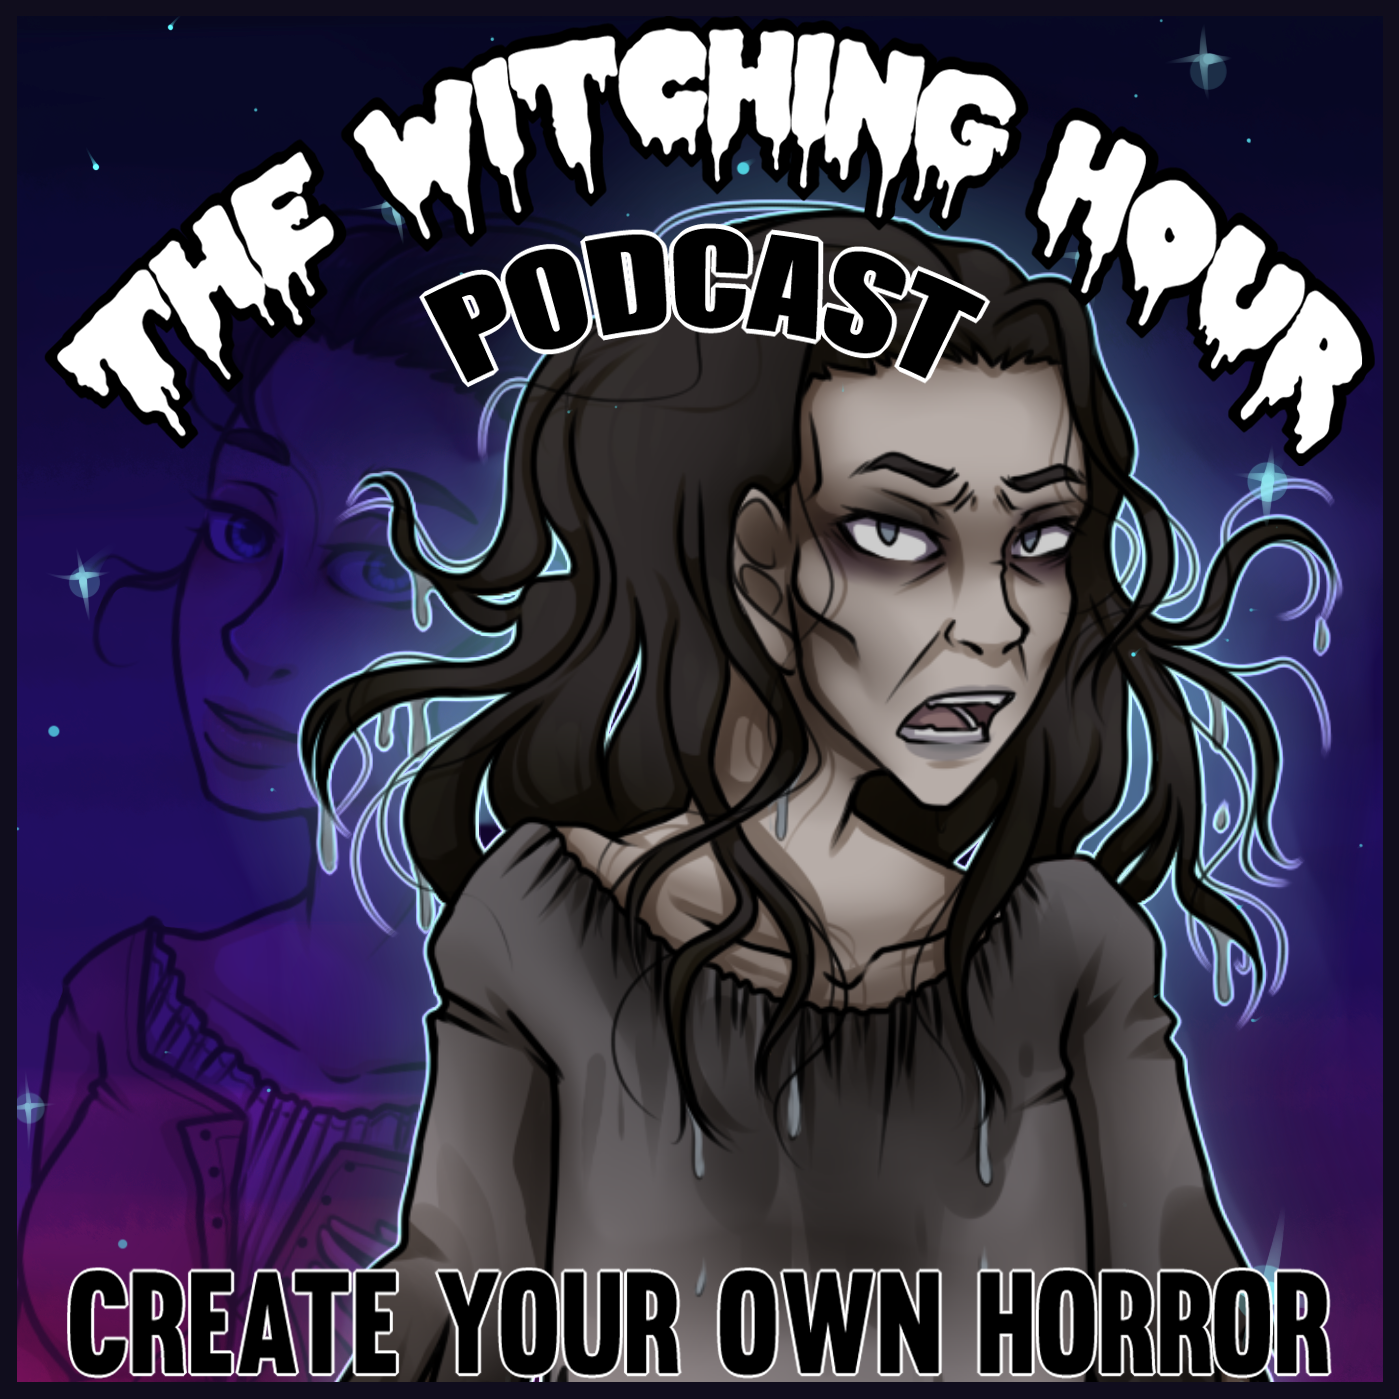 the_witching_hour_podcast_creative_horror_ep24_tallahassee_harlot_urban_legend